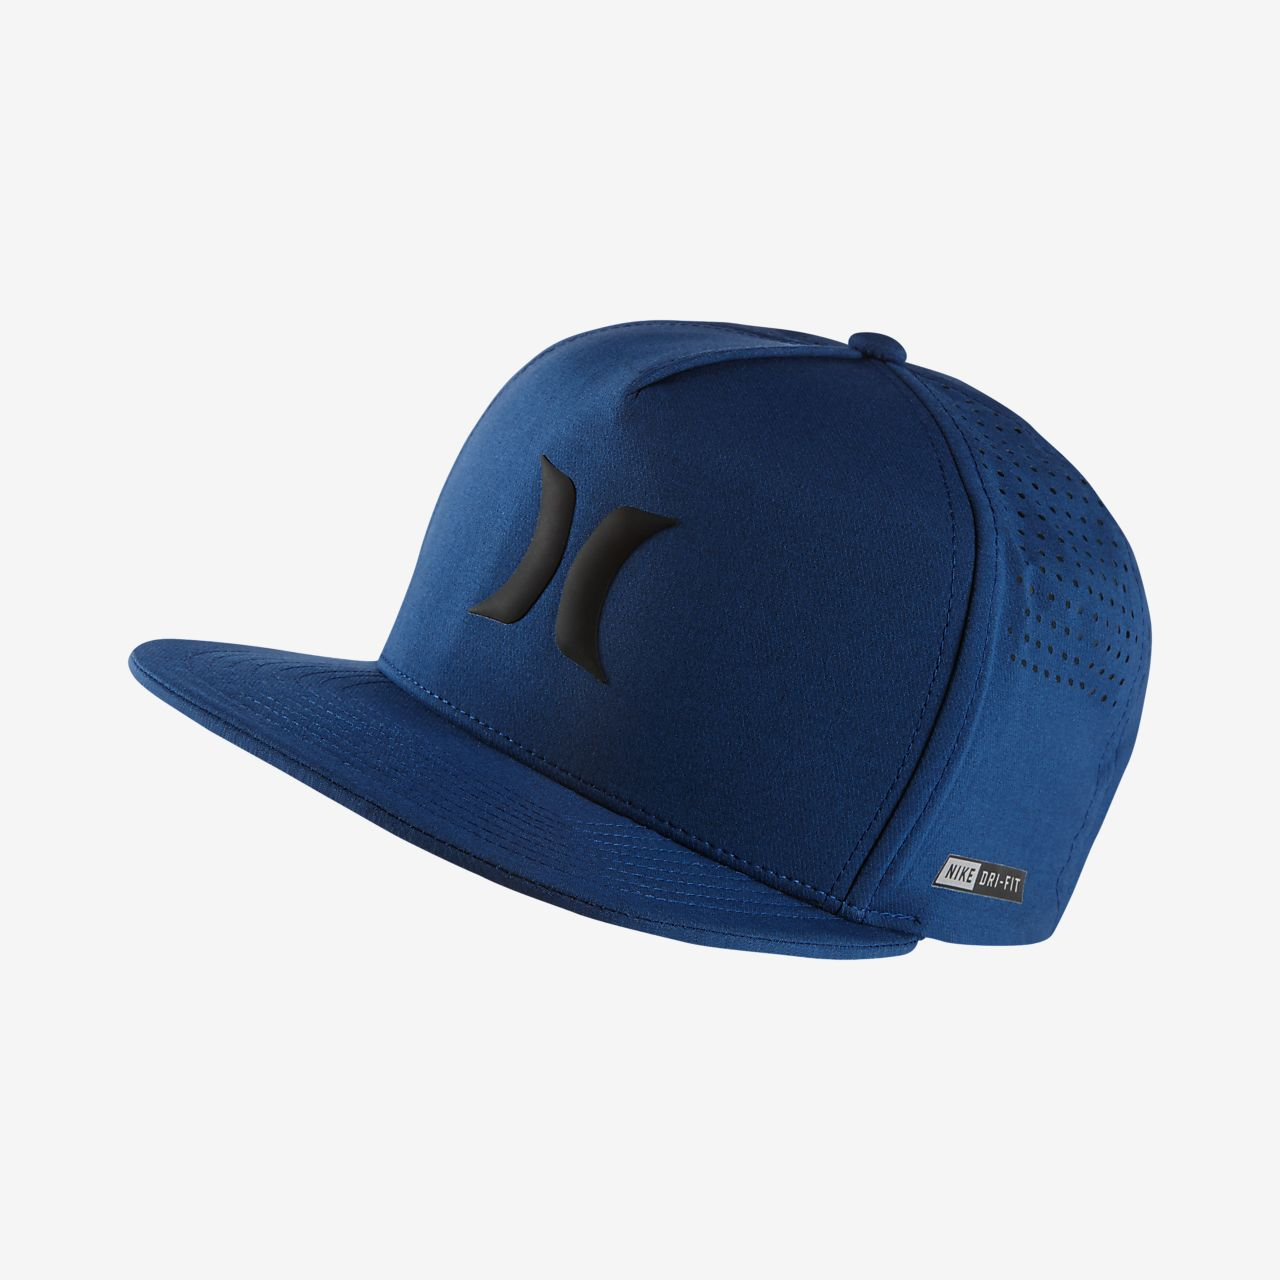 ... best price hurley dri fit icon mens adjustable hat 627d4 b86a1 919b7a47c550